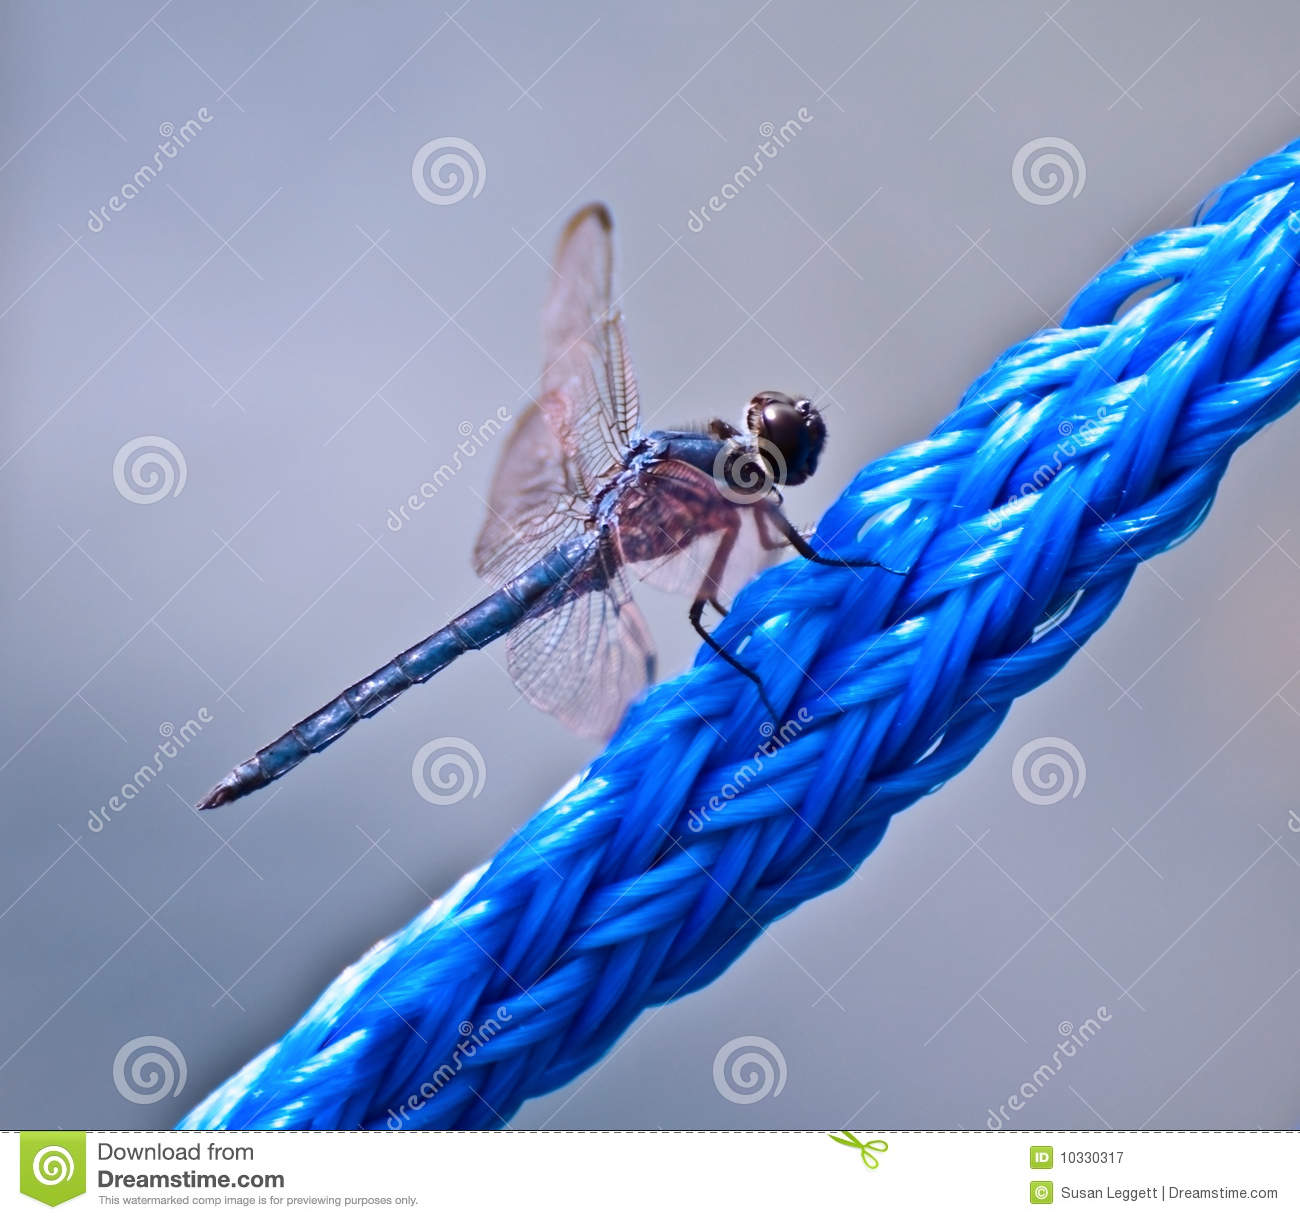 Blue Dragonfly on Blue Rope